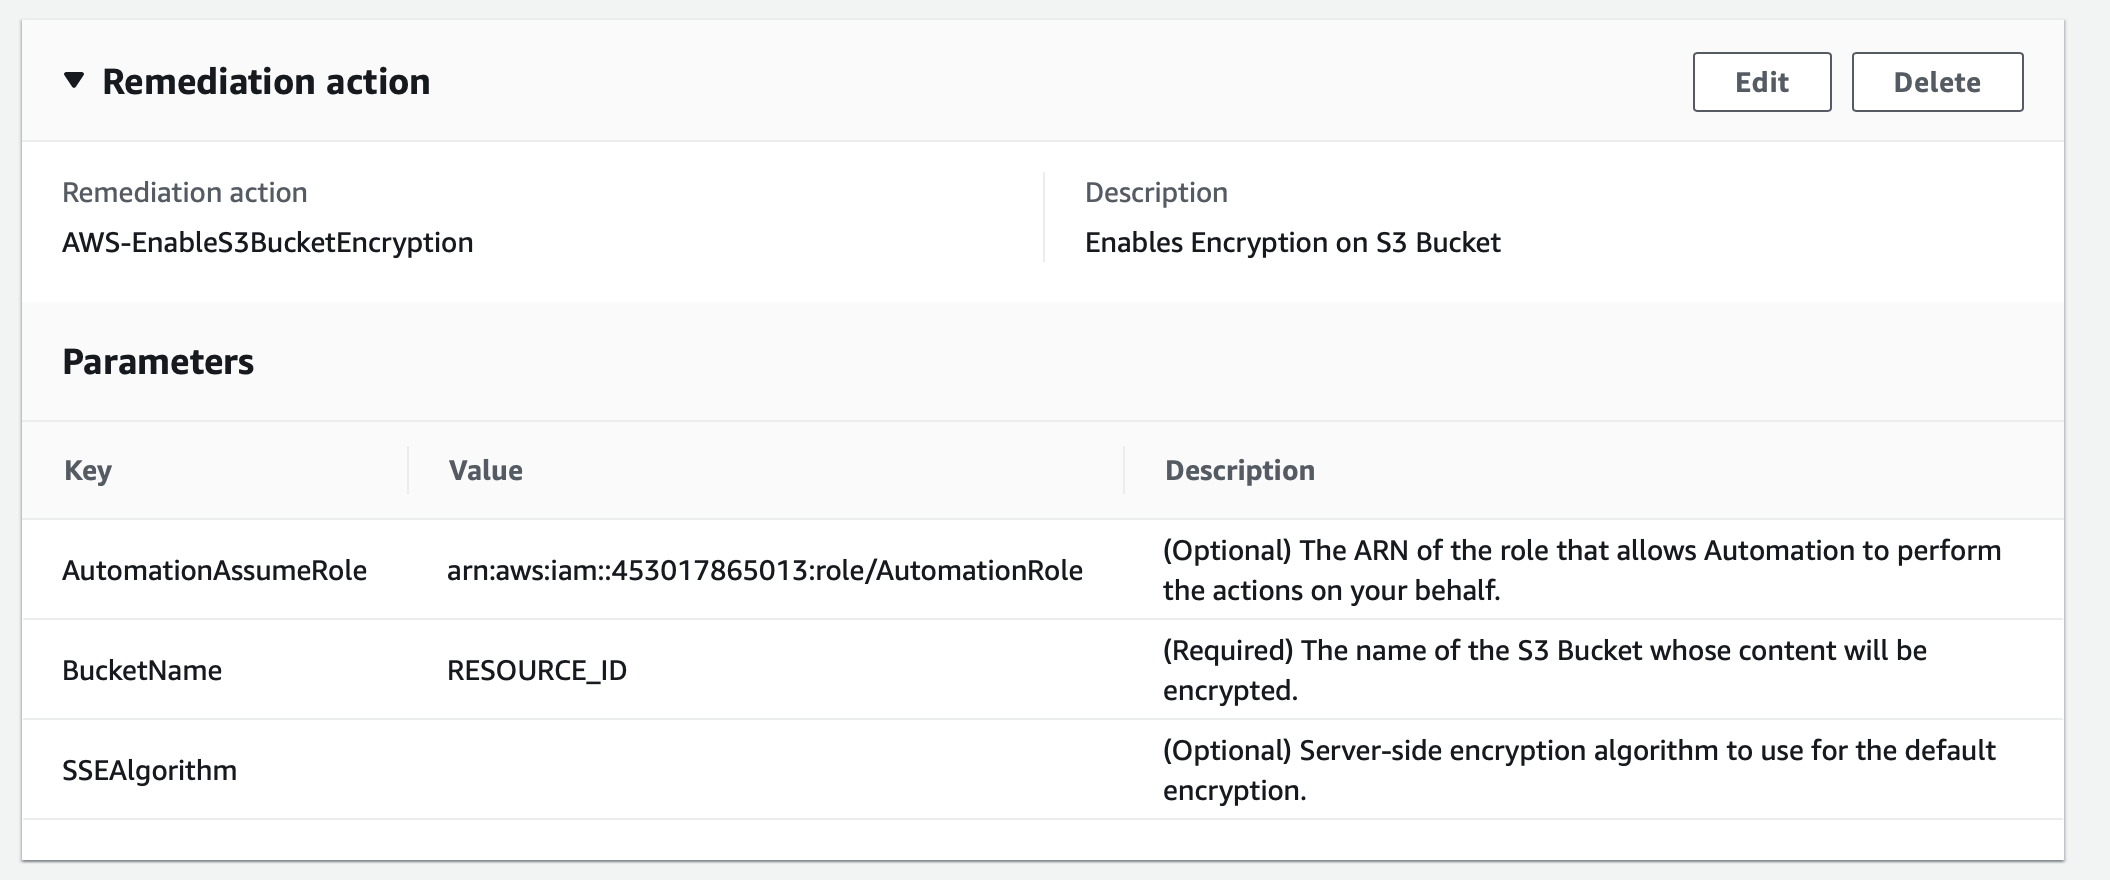 AWS-EnableS3BucketEncryption remediation action enables encryption on an S3 bucket. The Remediation section displays parameters (key, value, and description).